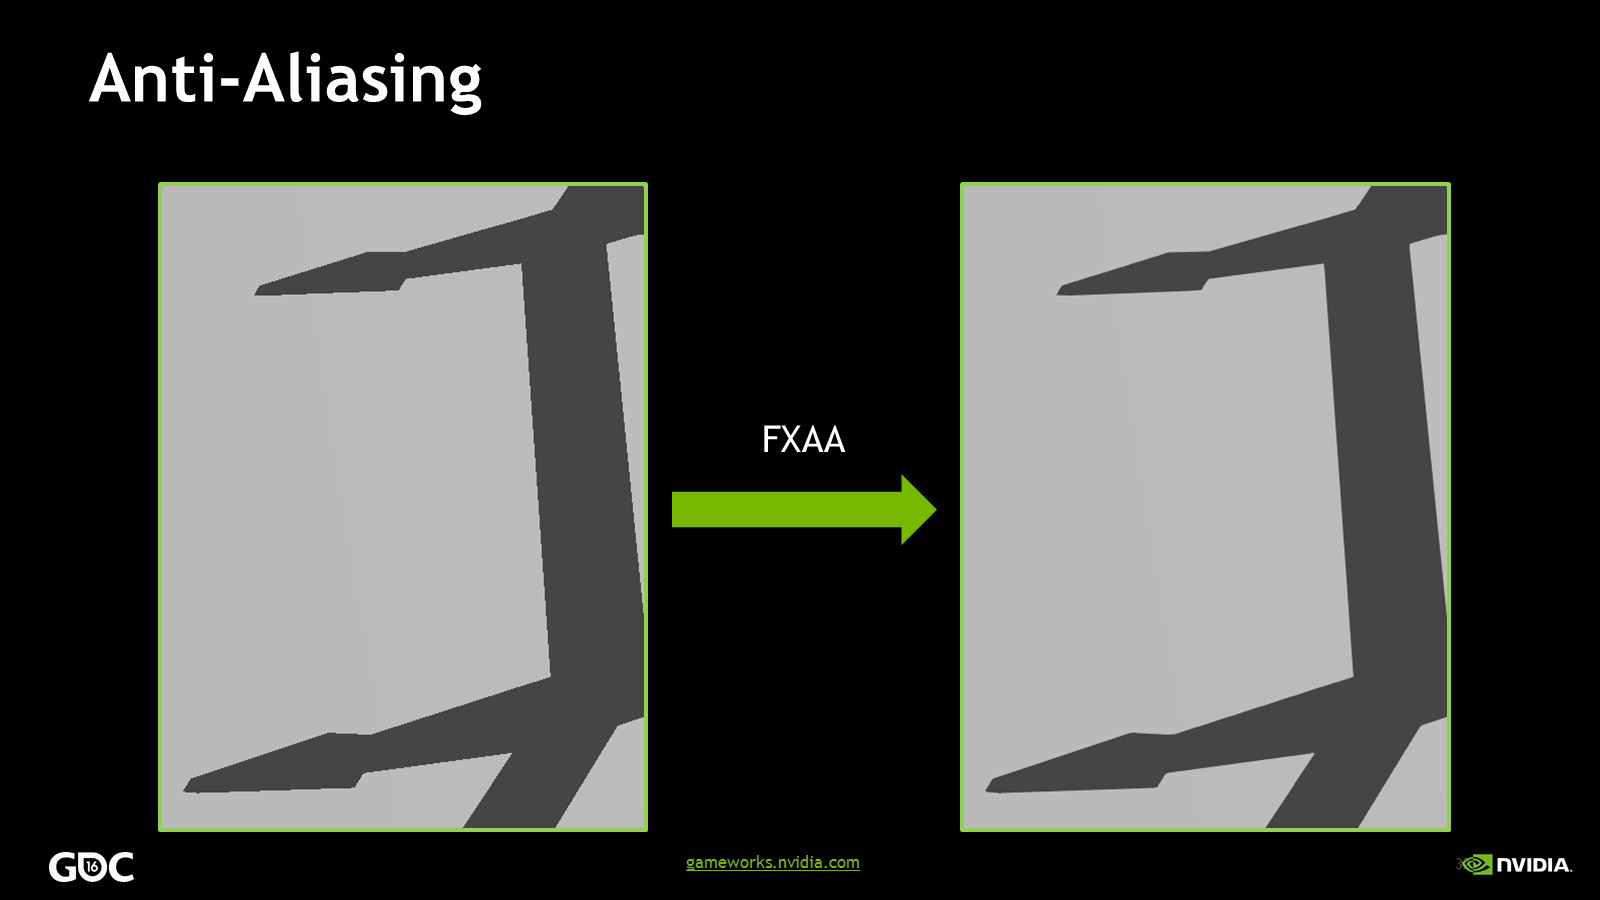 Post-Process Anti-Aliasing is applied to remove aliasing from the edges of shadows